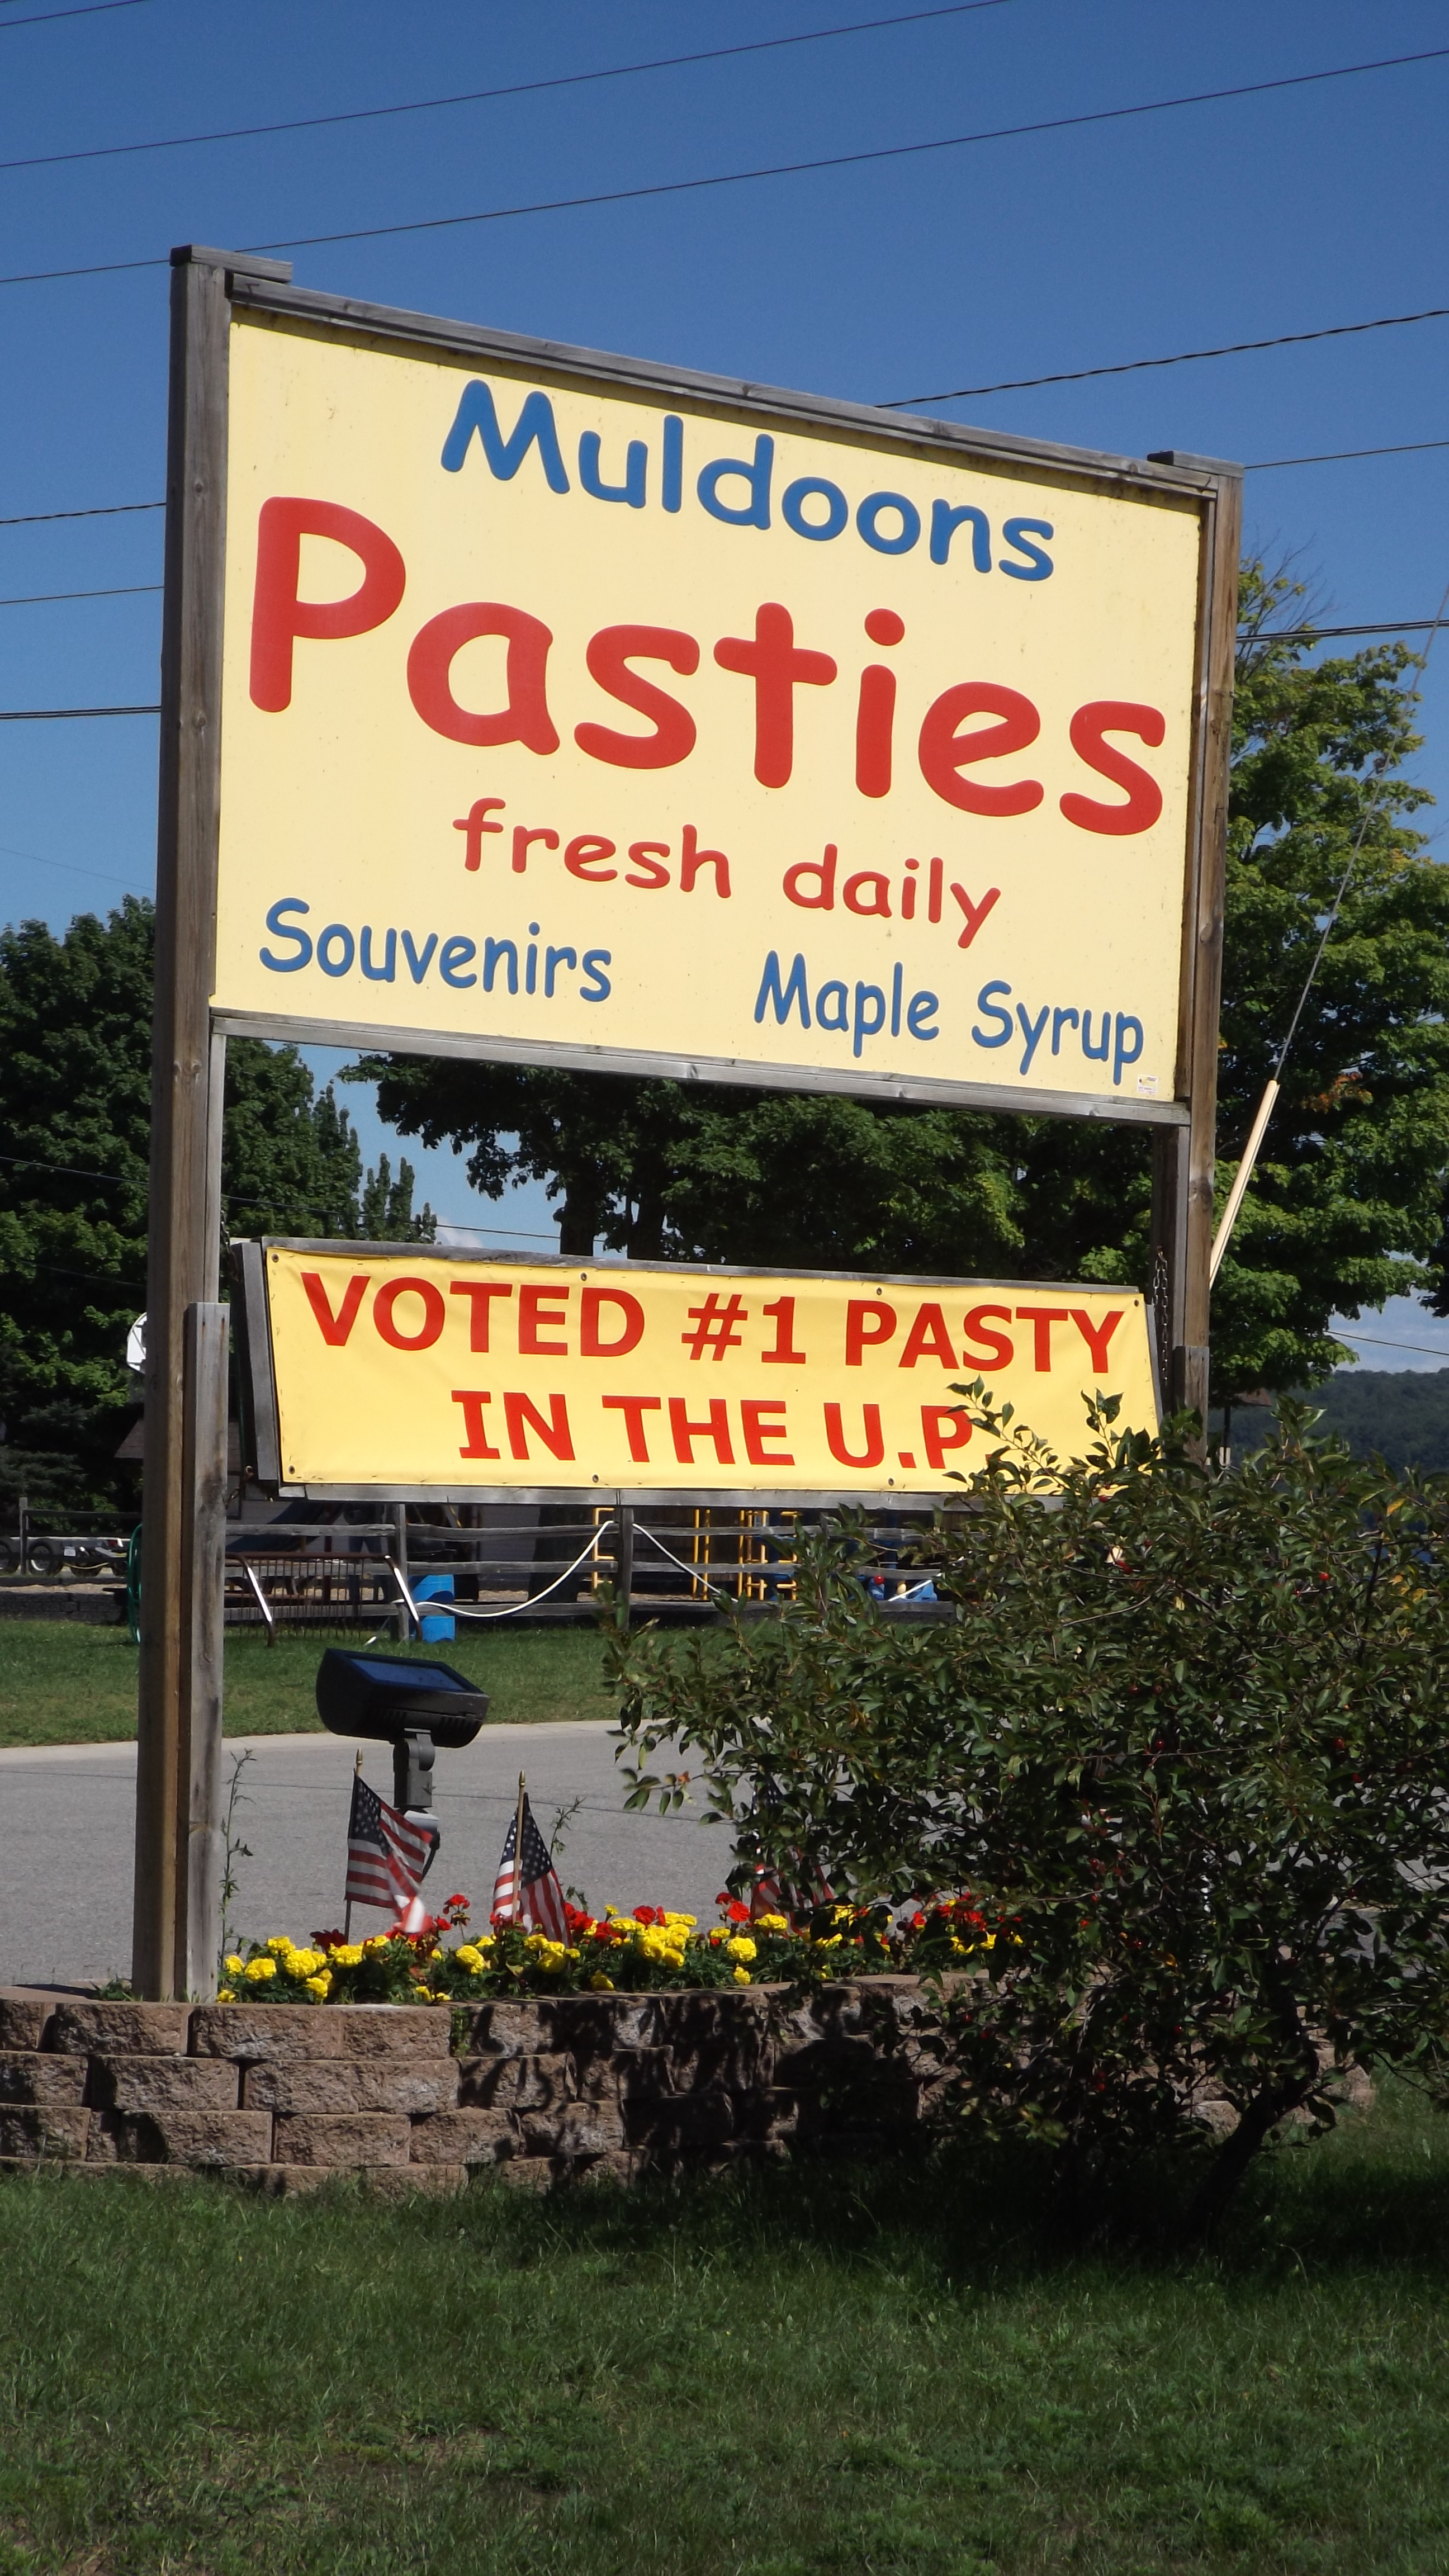 Christmas in August, With Edible Pasties – Life on the Blue Highways